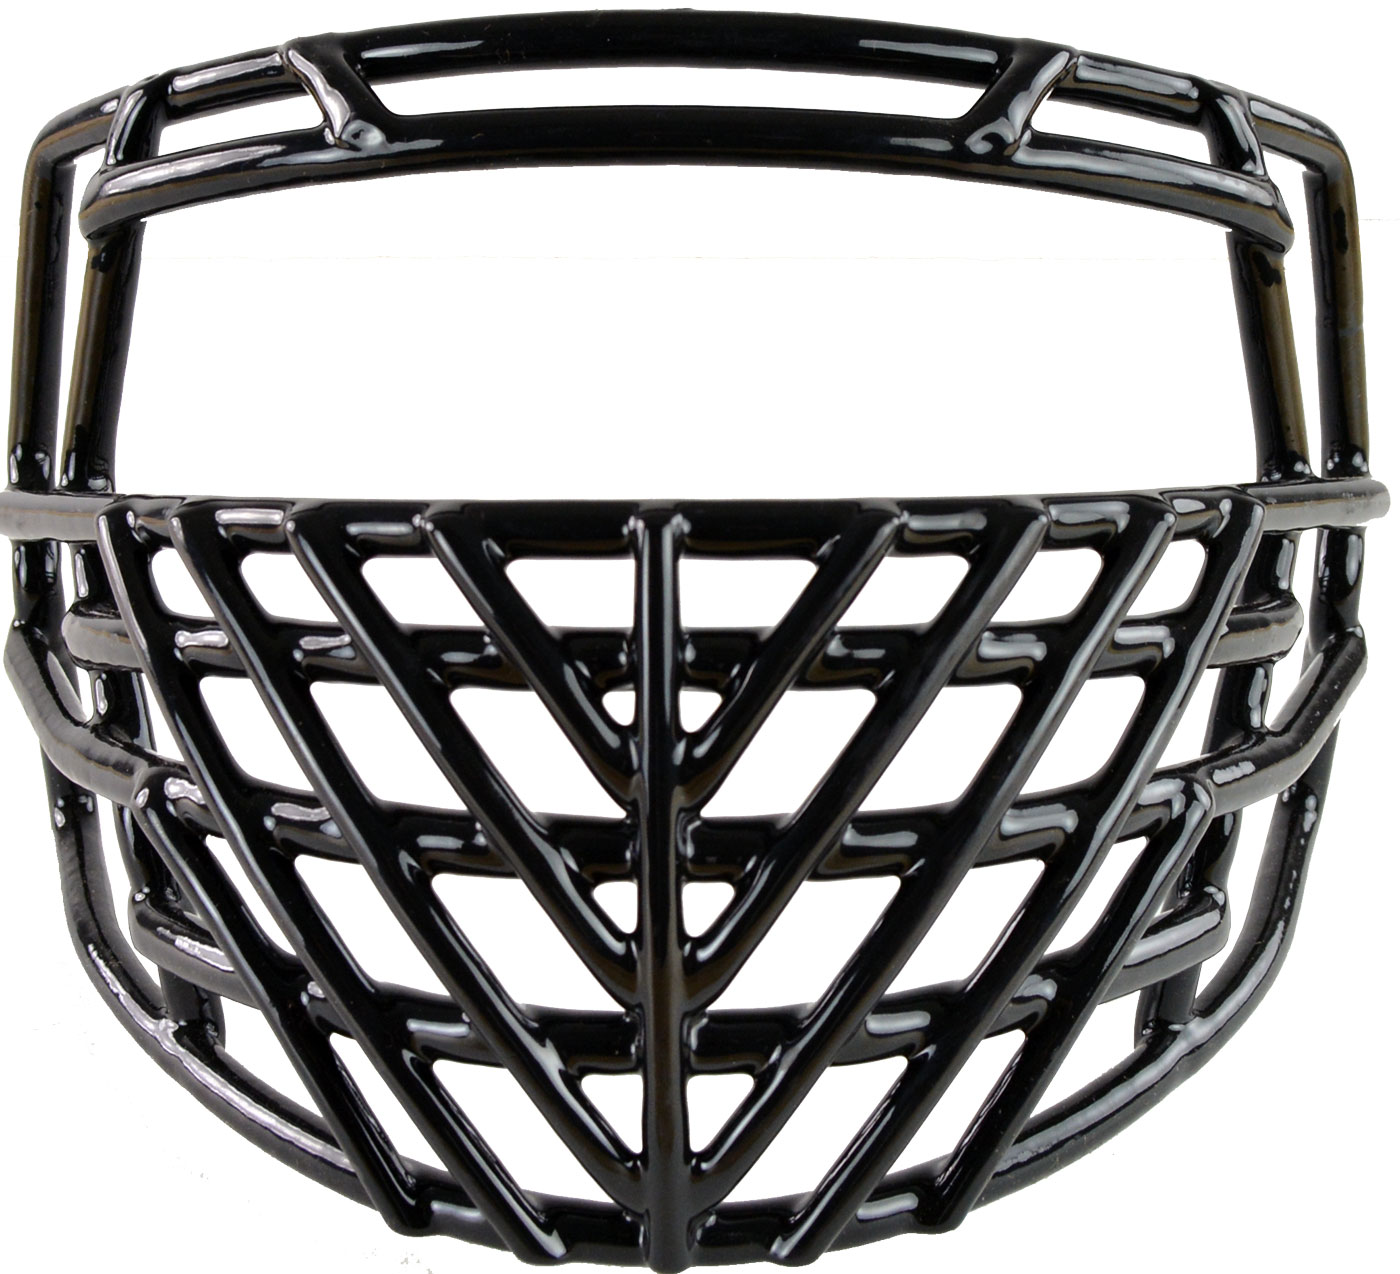 Most intimidating face masks